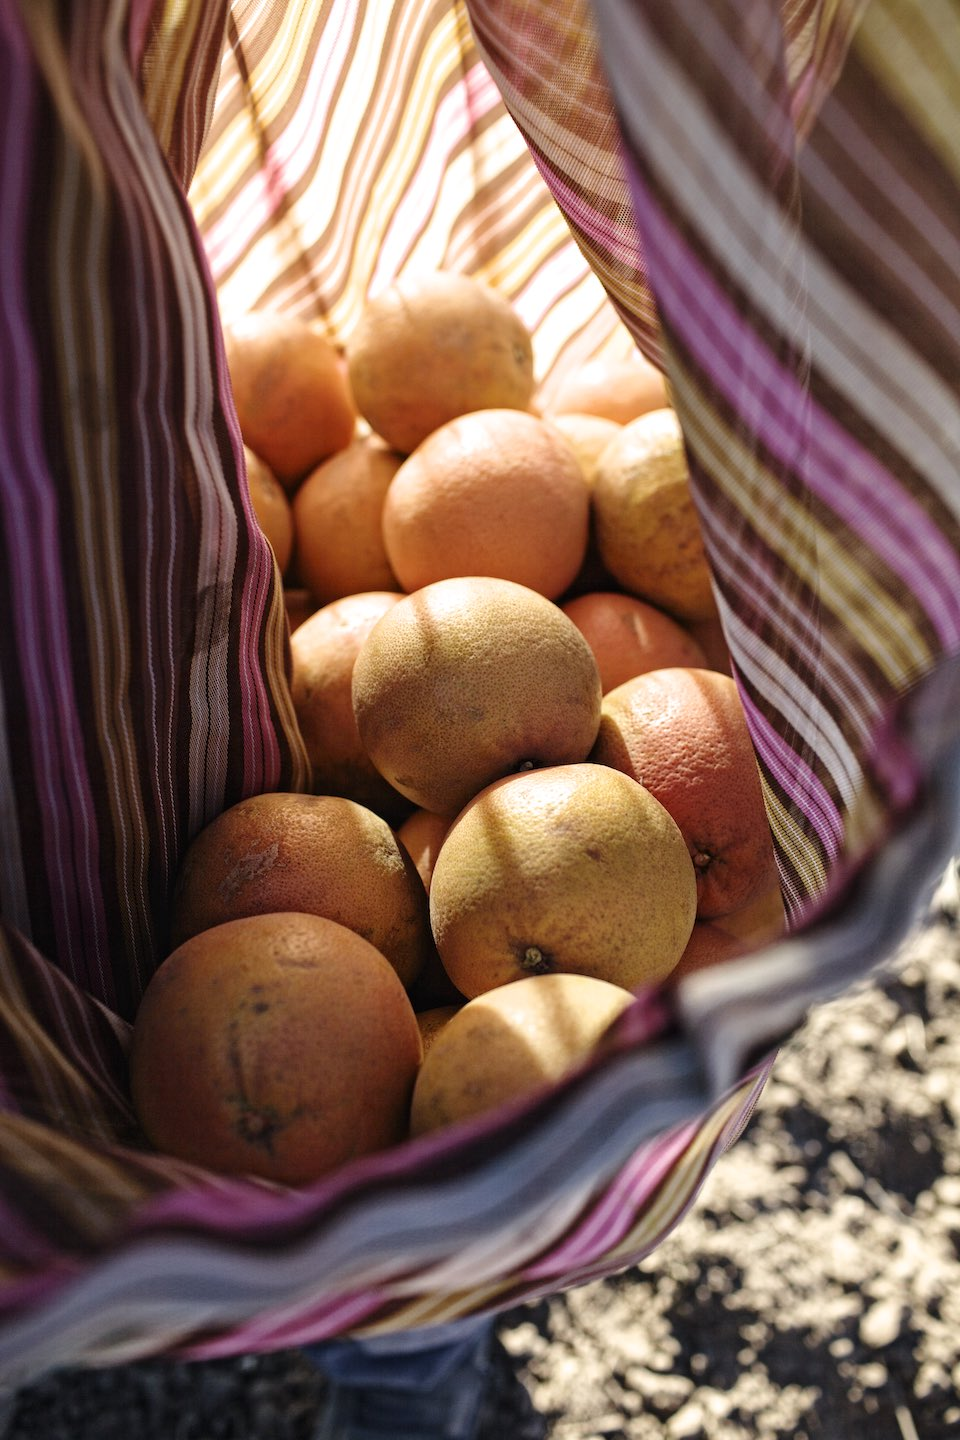 Freshly picked oranges gathered in a multihued, striped sack.